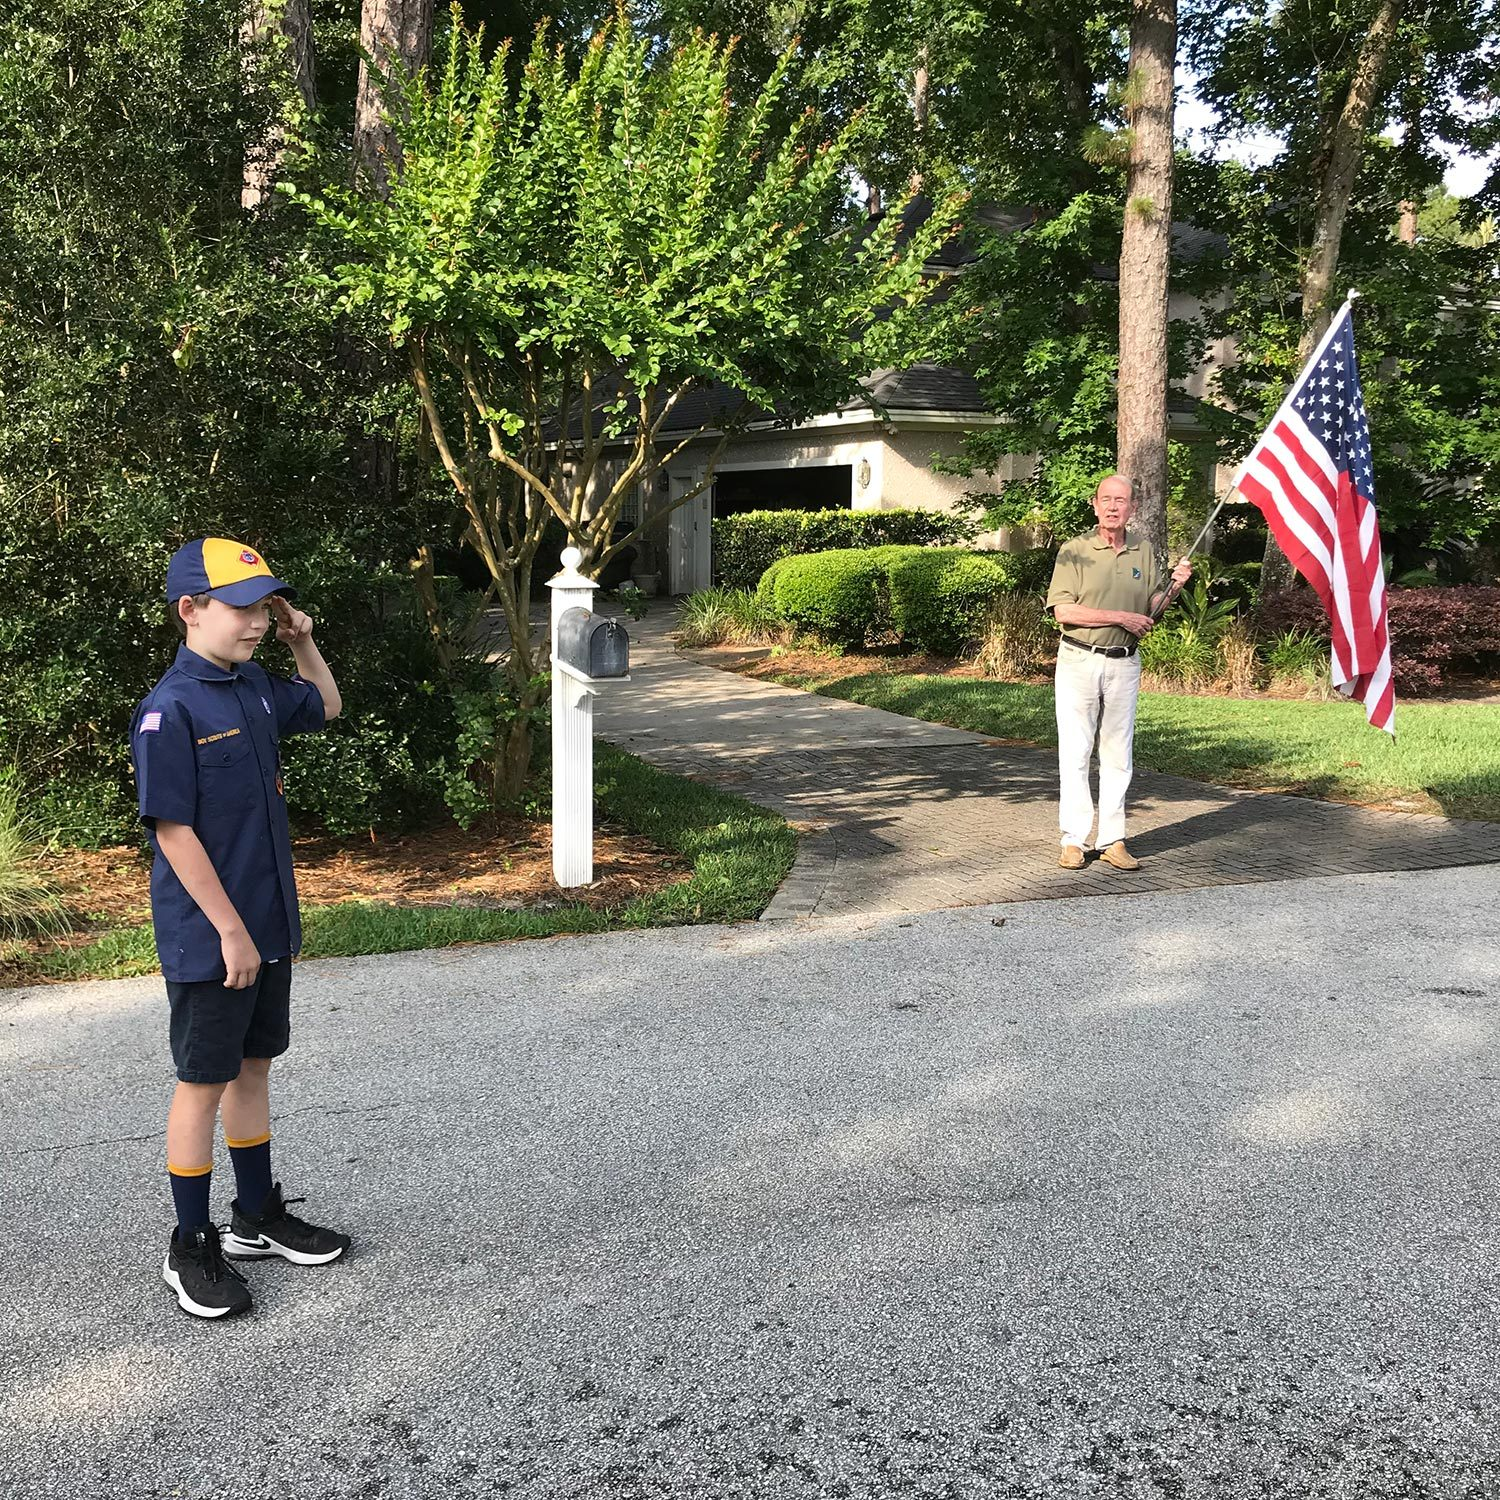 Retired naval officer brings families together to raise the flag